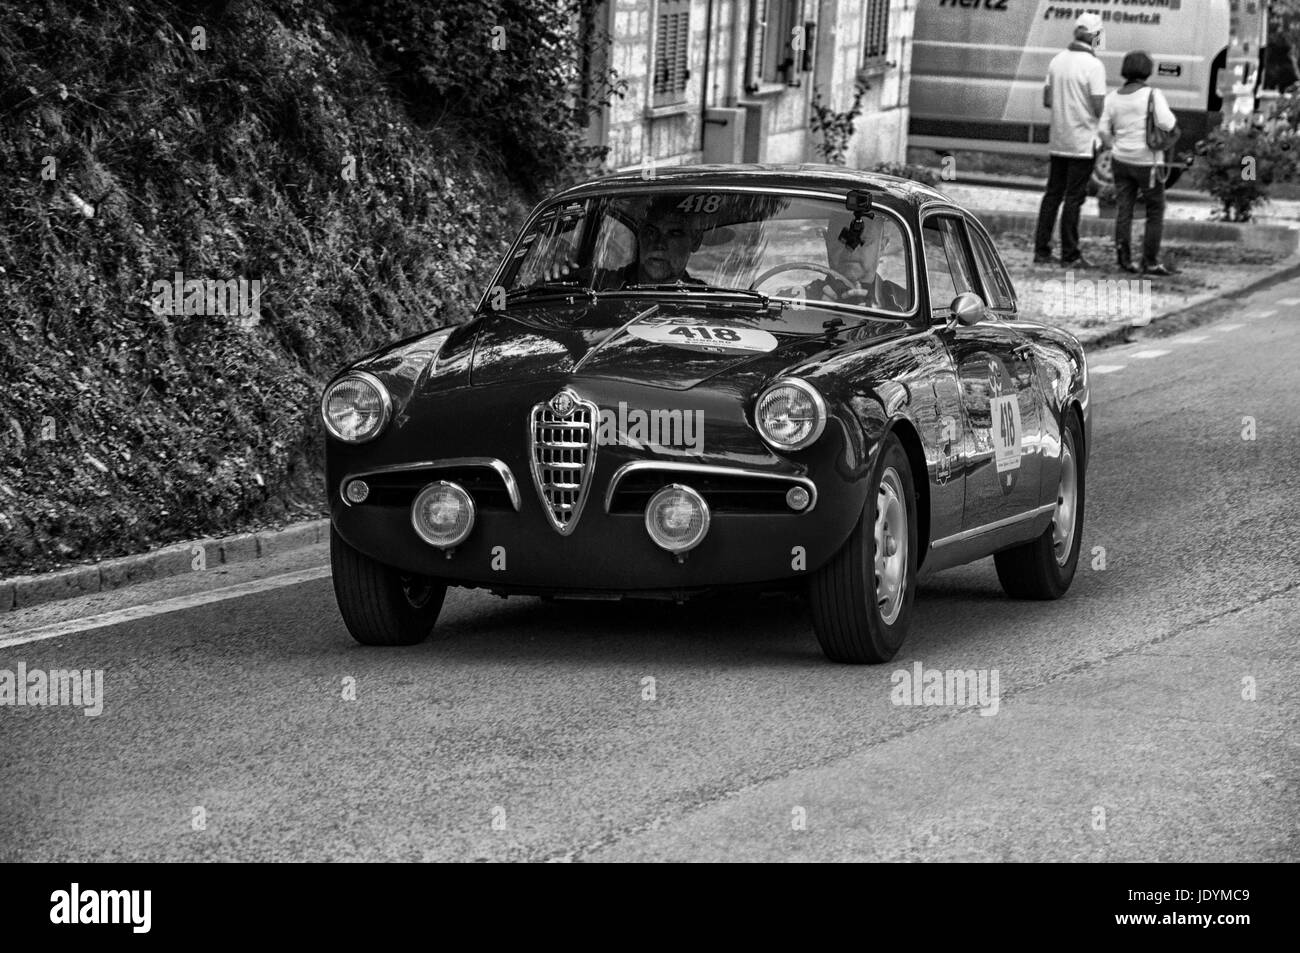 ALFA ROMEO GIULIETTA SPRINT VELOCE 1956 on an old racing car in ...